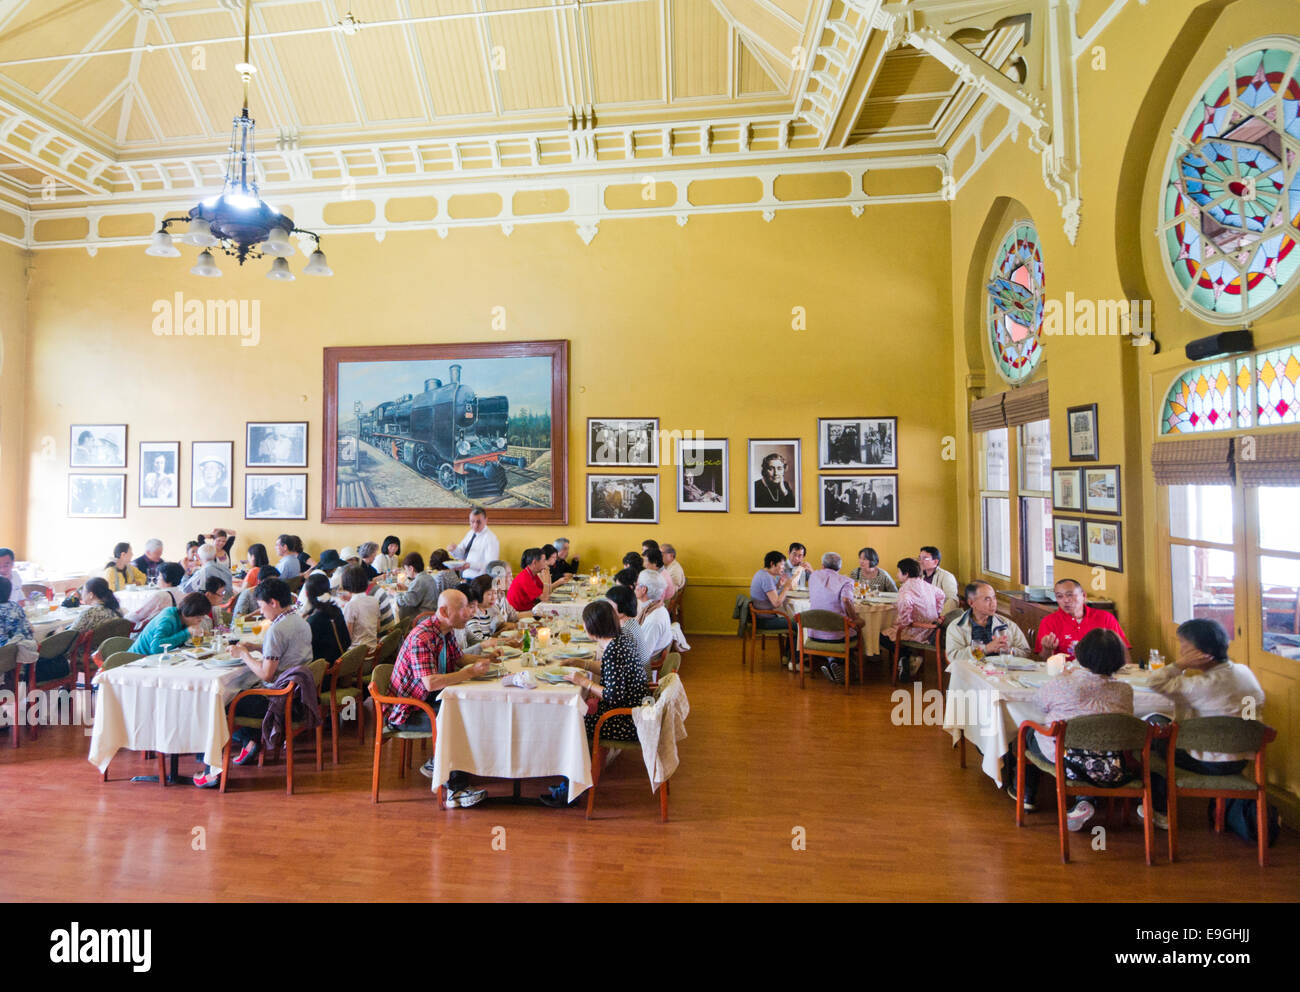 orient express restaurant at sirkeci station in istanbul turkey stock photo royalty free image. Black Bedroom Furniture Sets. Home Design Ideas